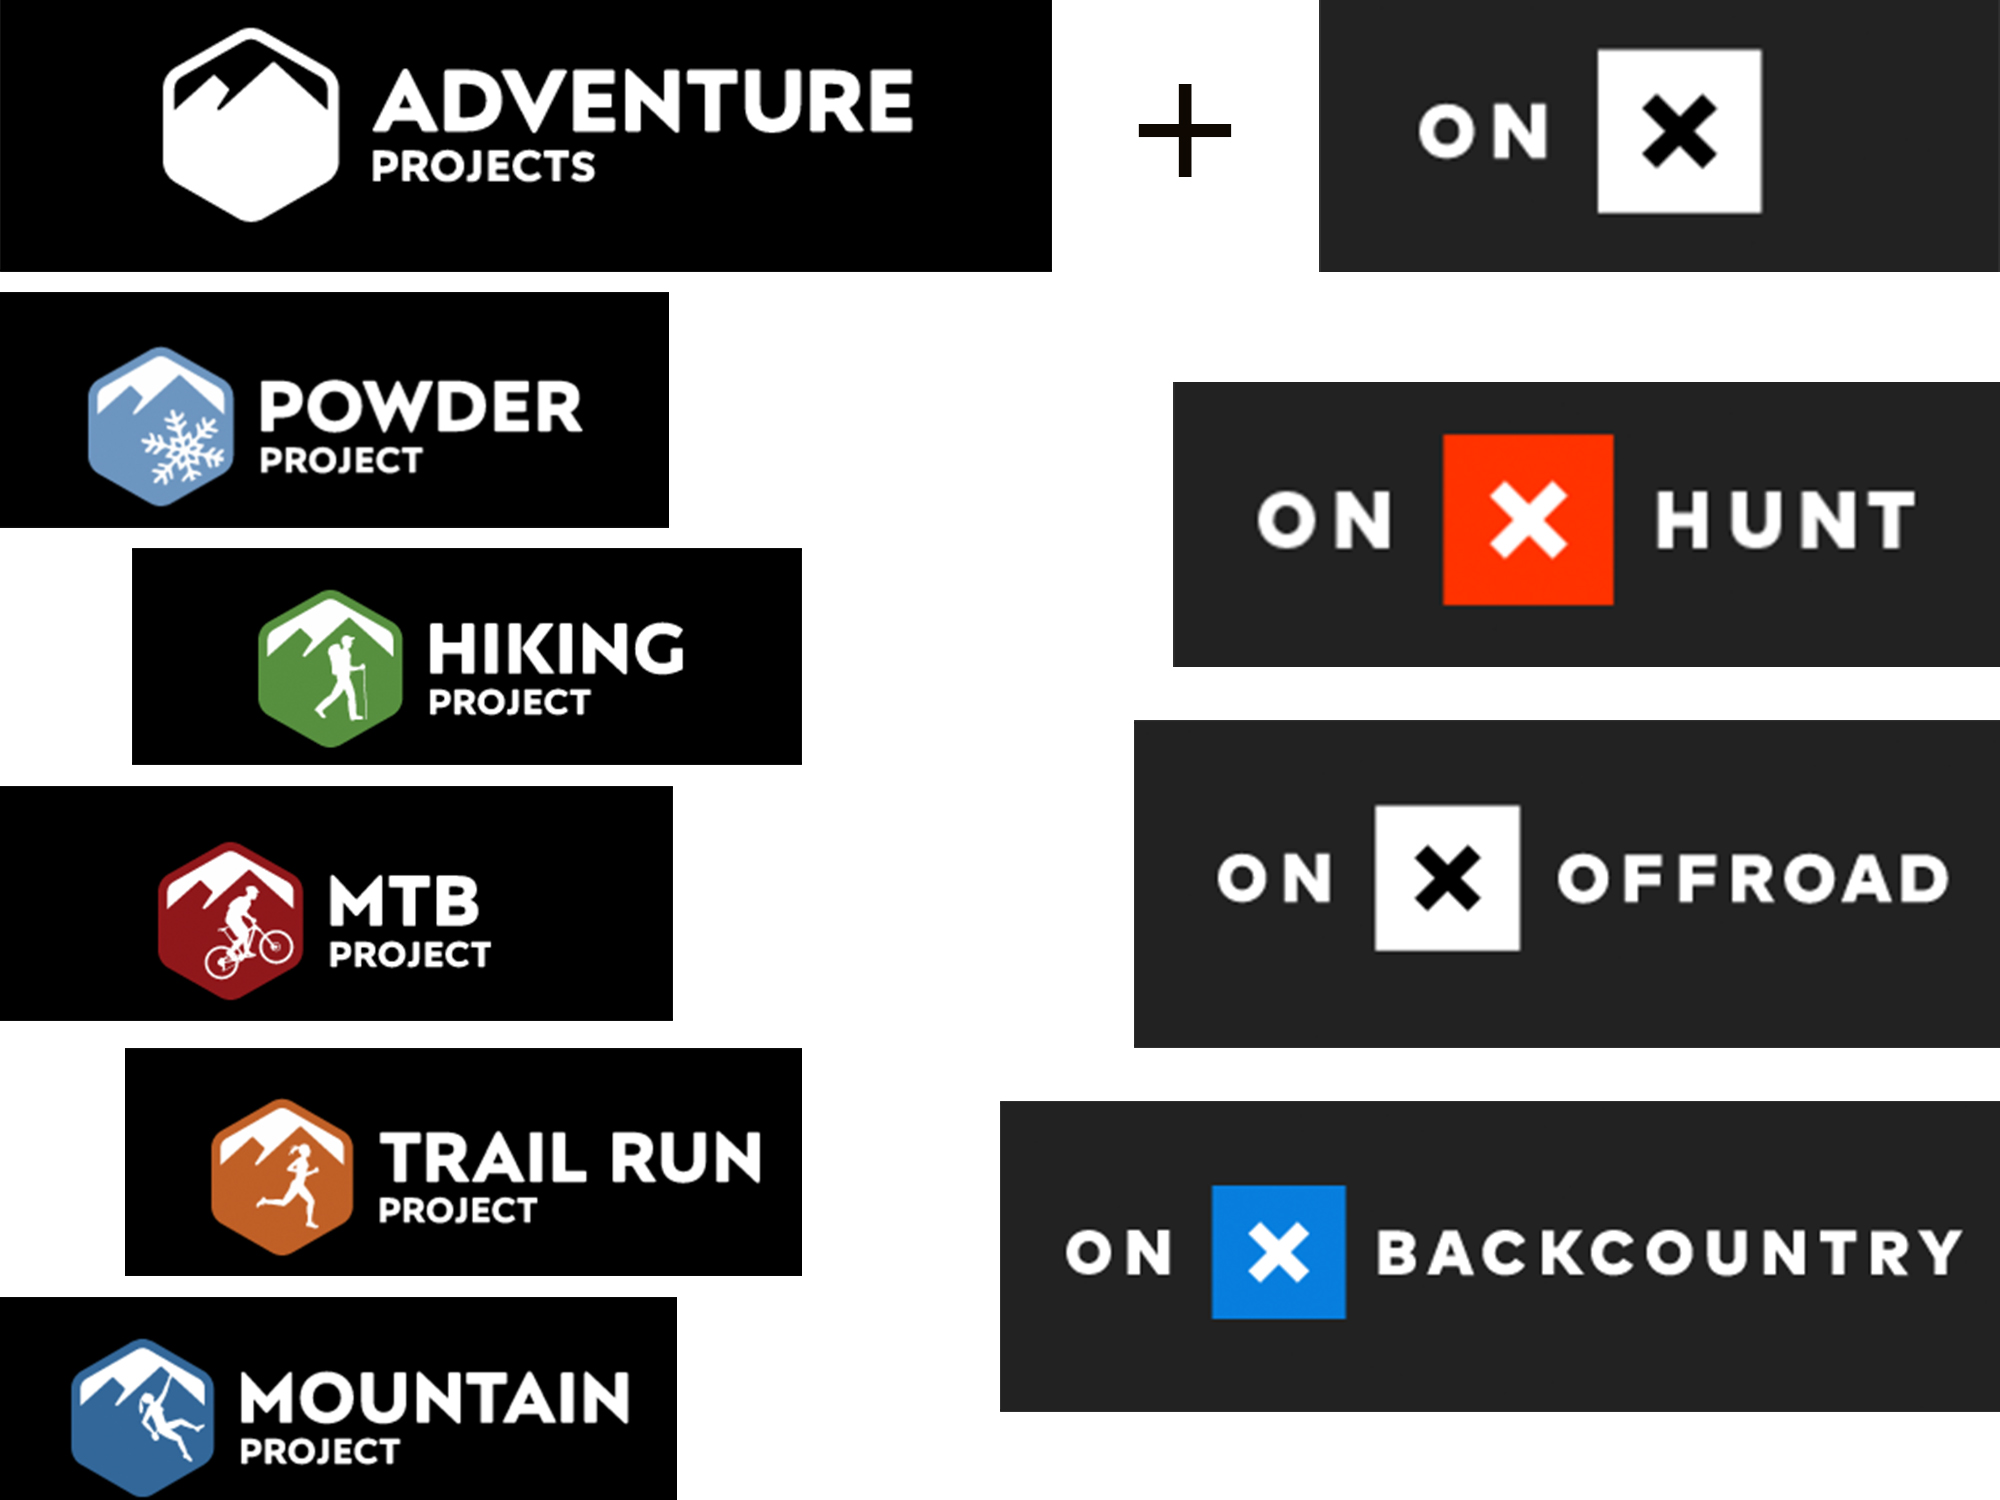 onx and adventure projects